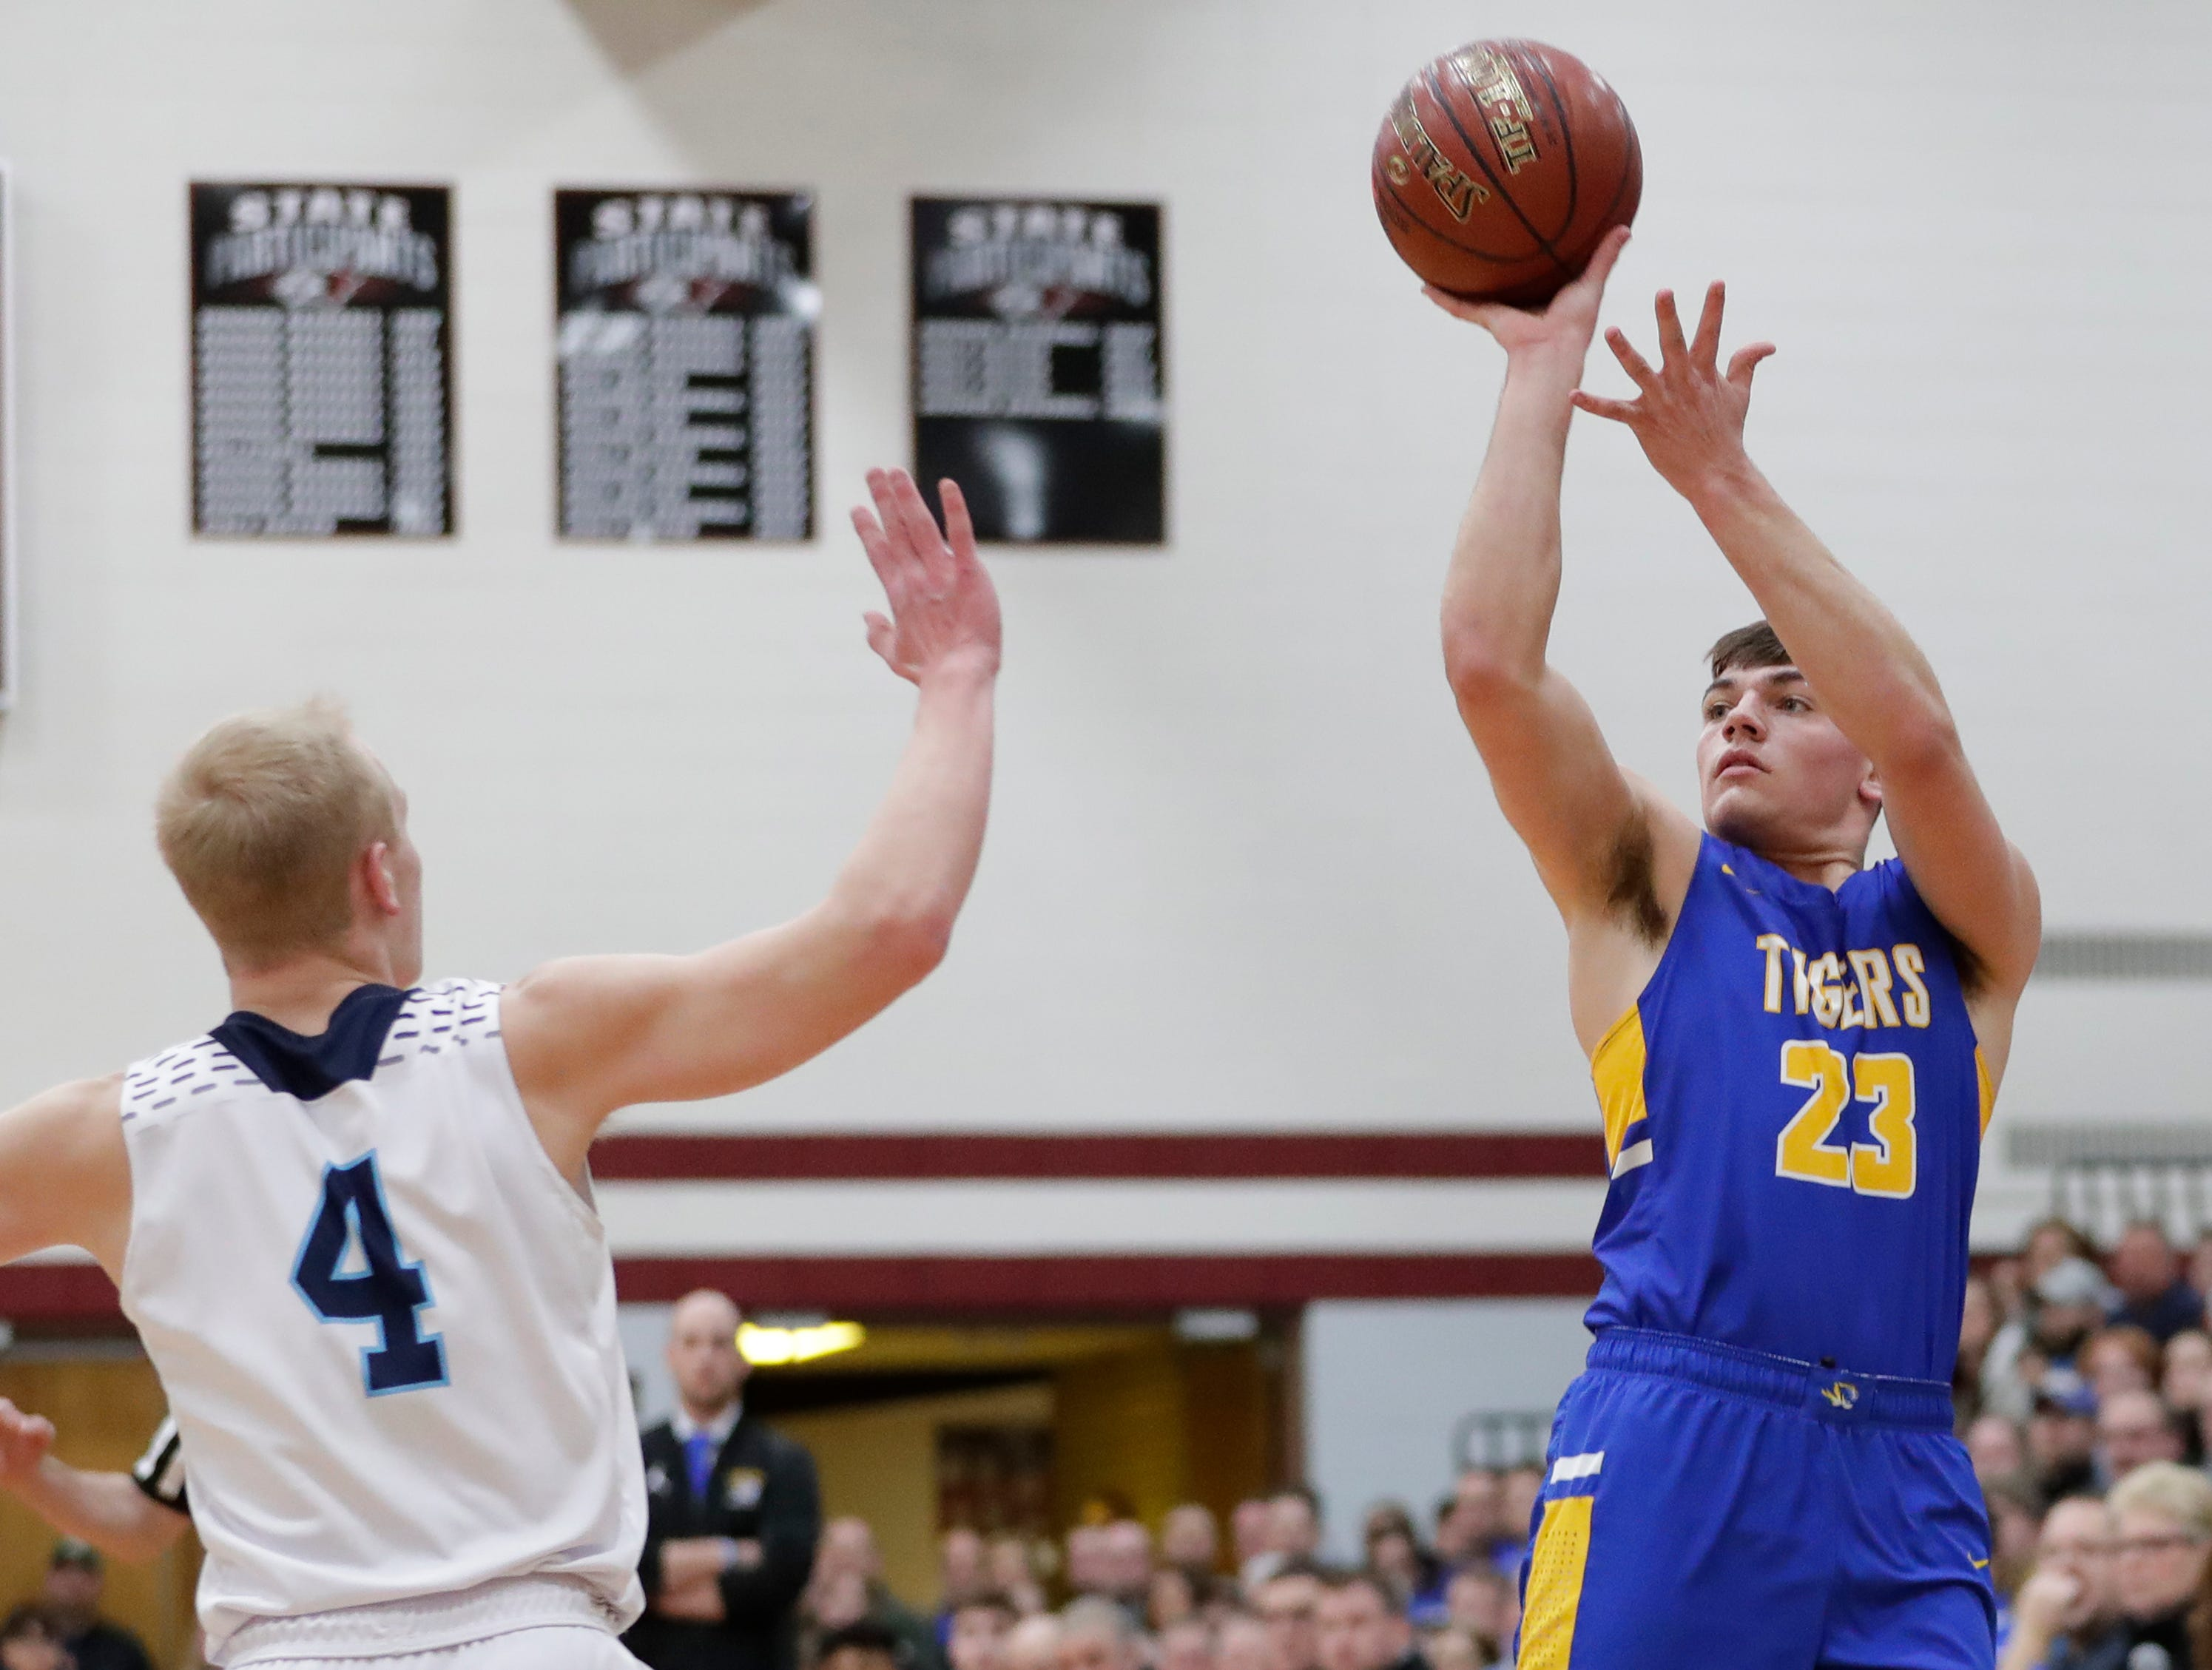 Howards Grove's Dalton Free (23) puts up a shot against Roncalli during a WIAA Division 4 sectional semifinal at New Holstein High School Thursday, March 7, 2019, in New Holstein, Wis. Joshua Clark/USA TODAY NETWORK-Wisconsin